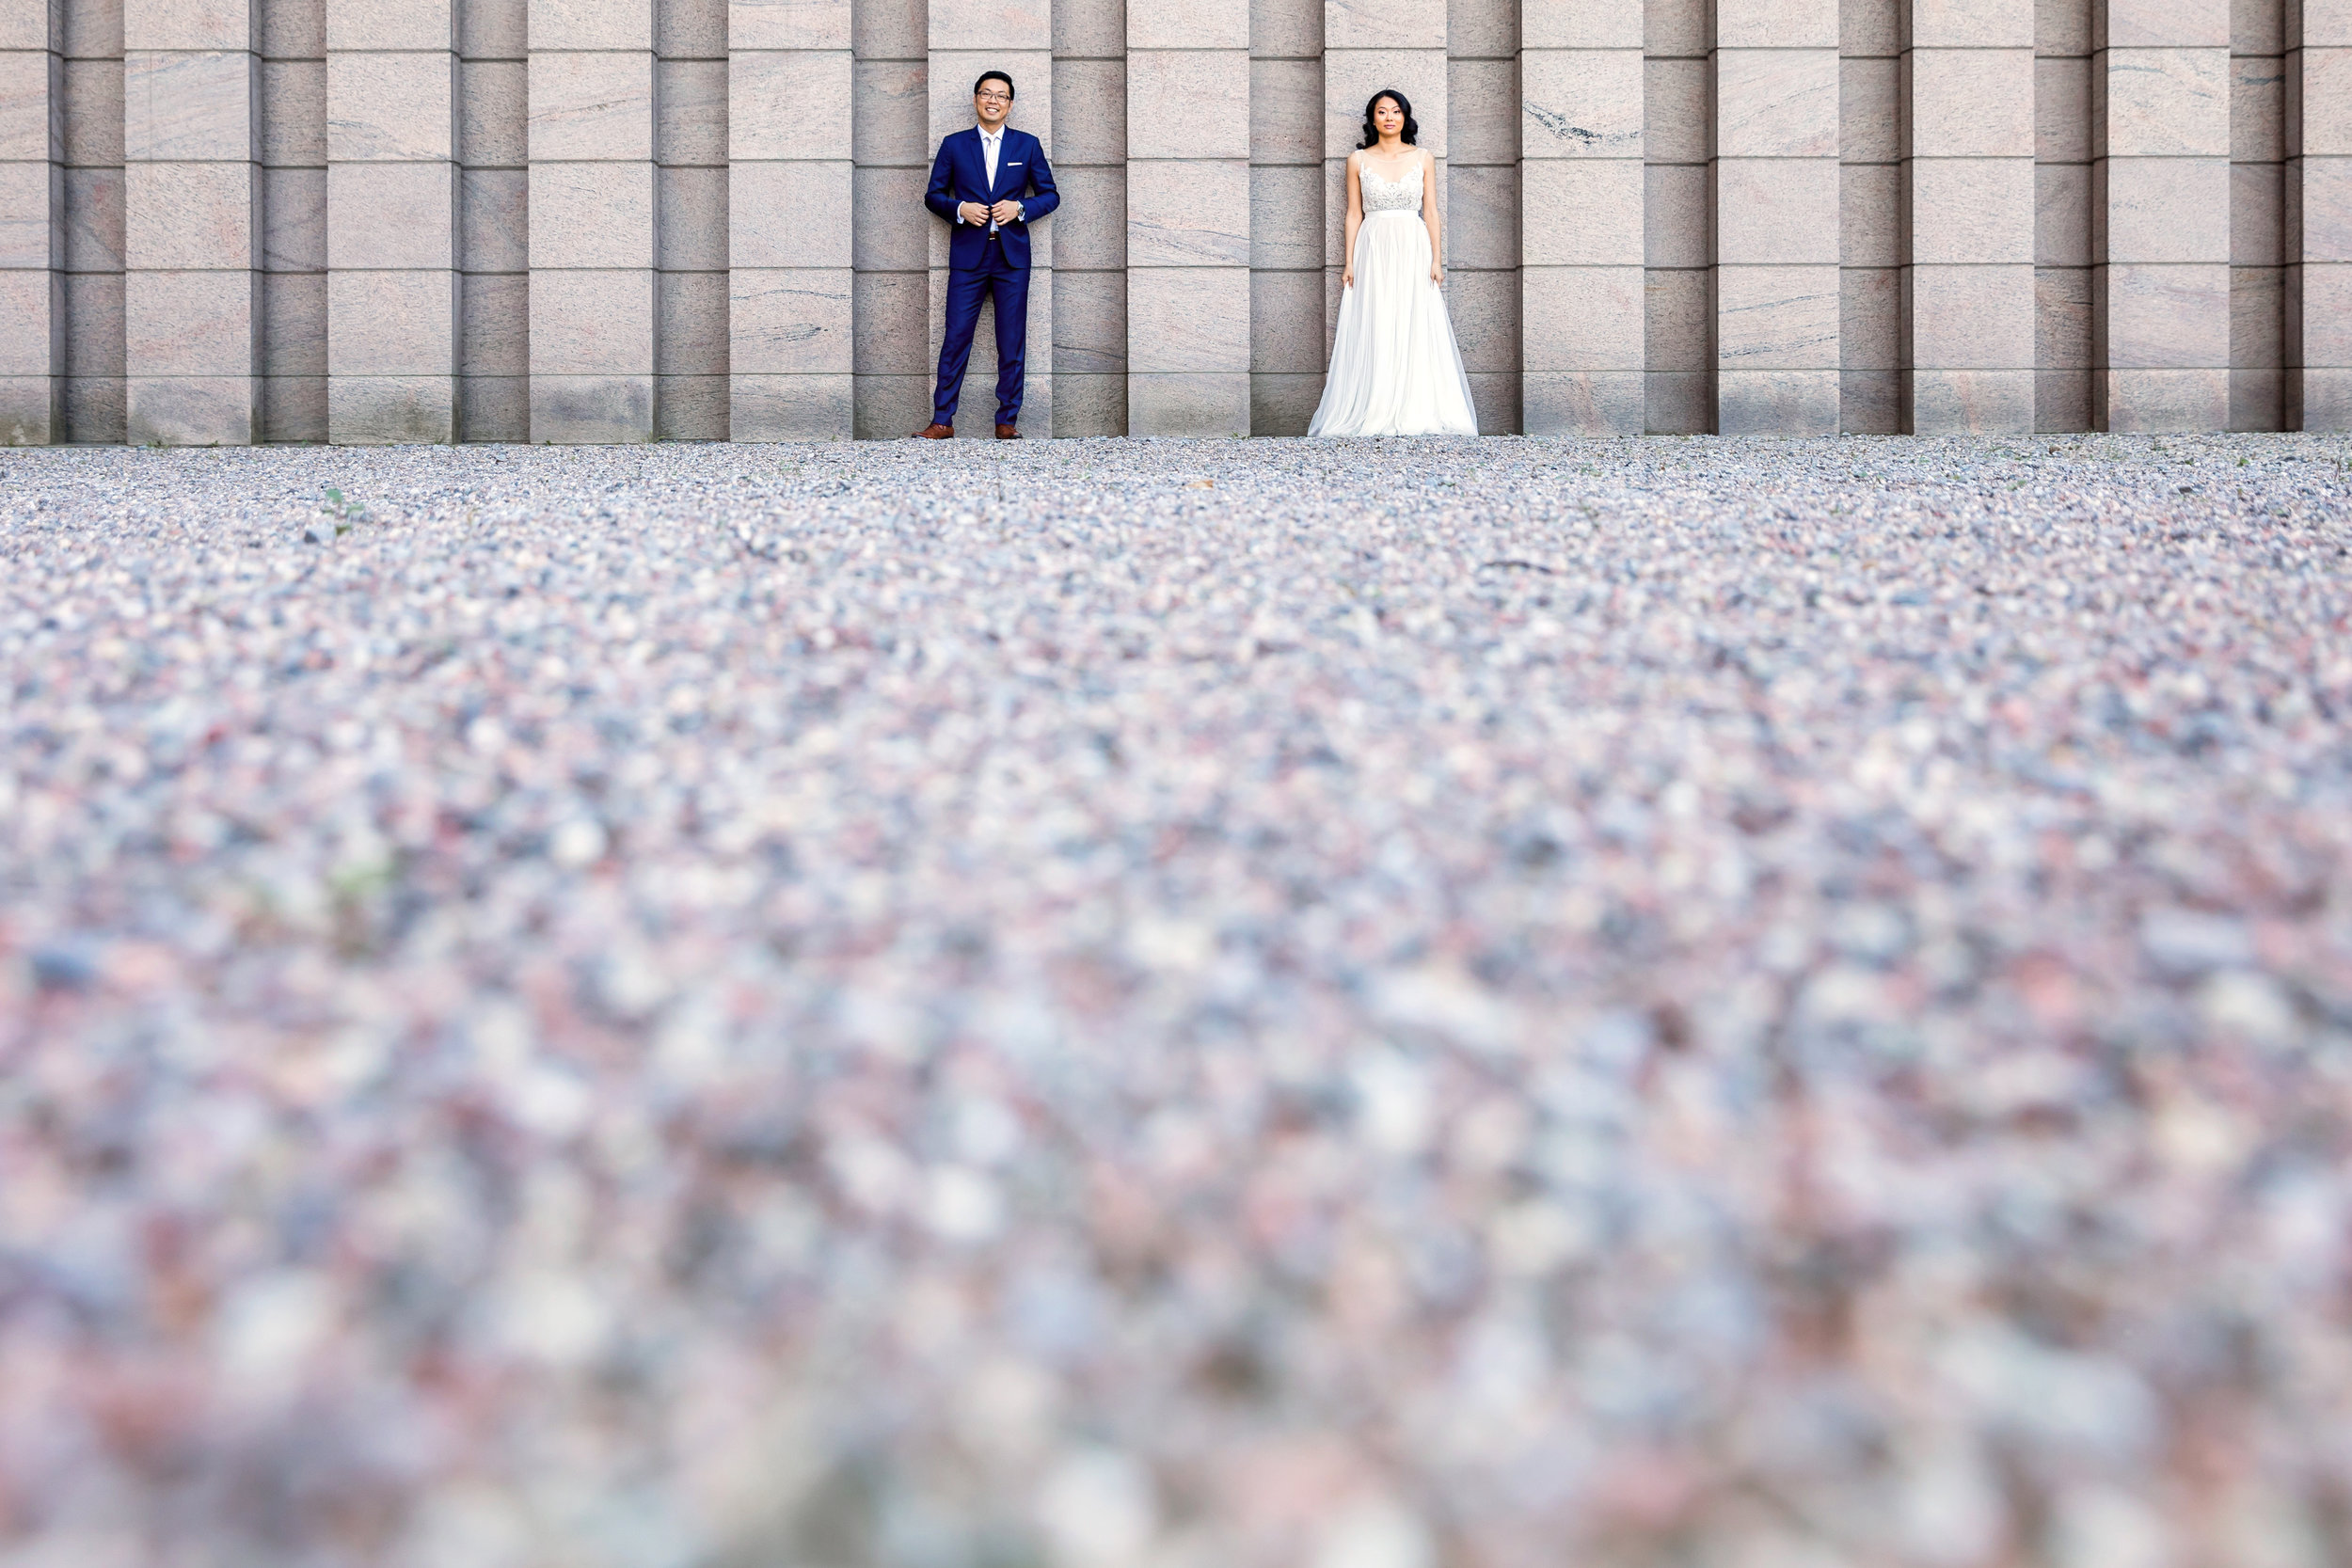 PWPC Spring 2019 Bride and Groom Portrait 4.jpg